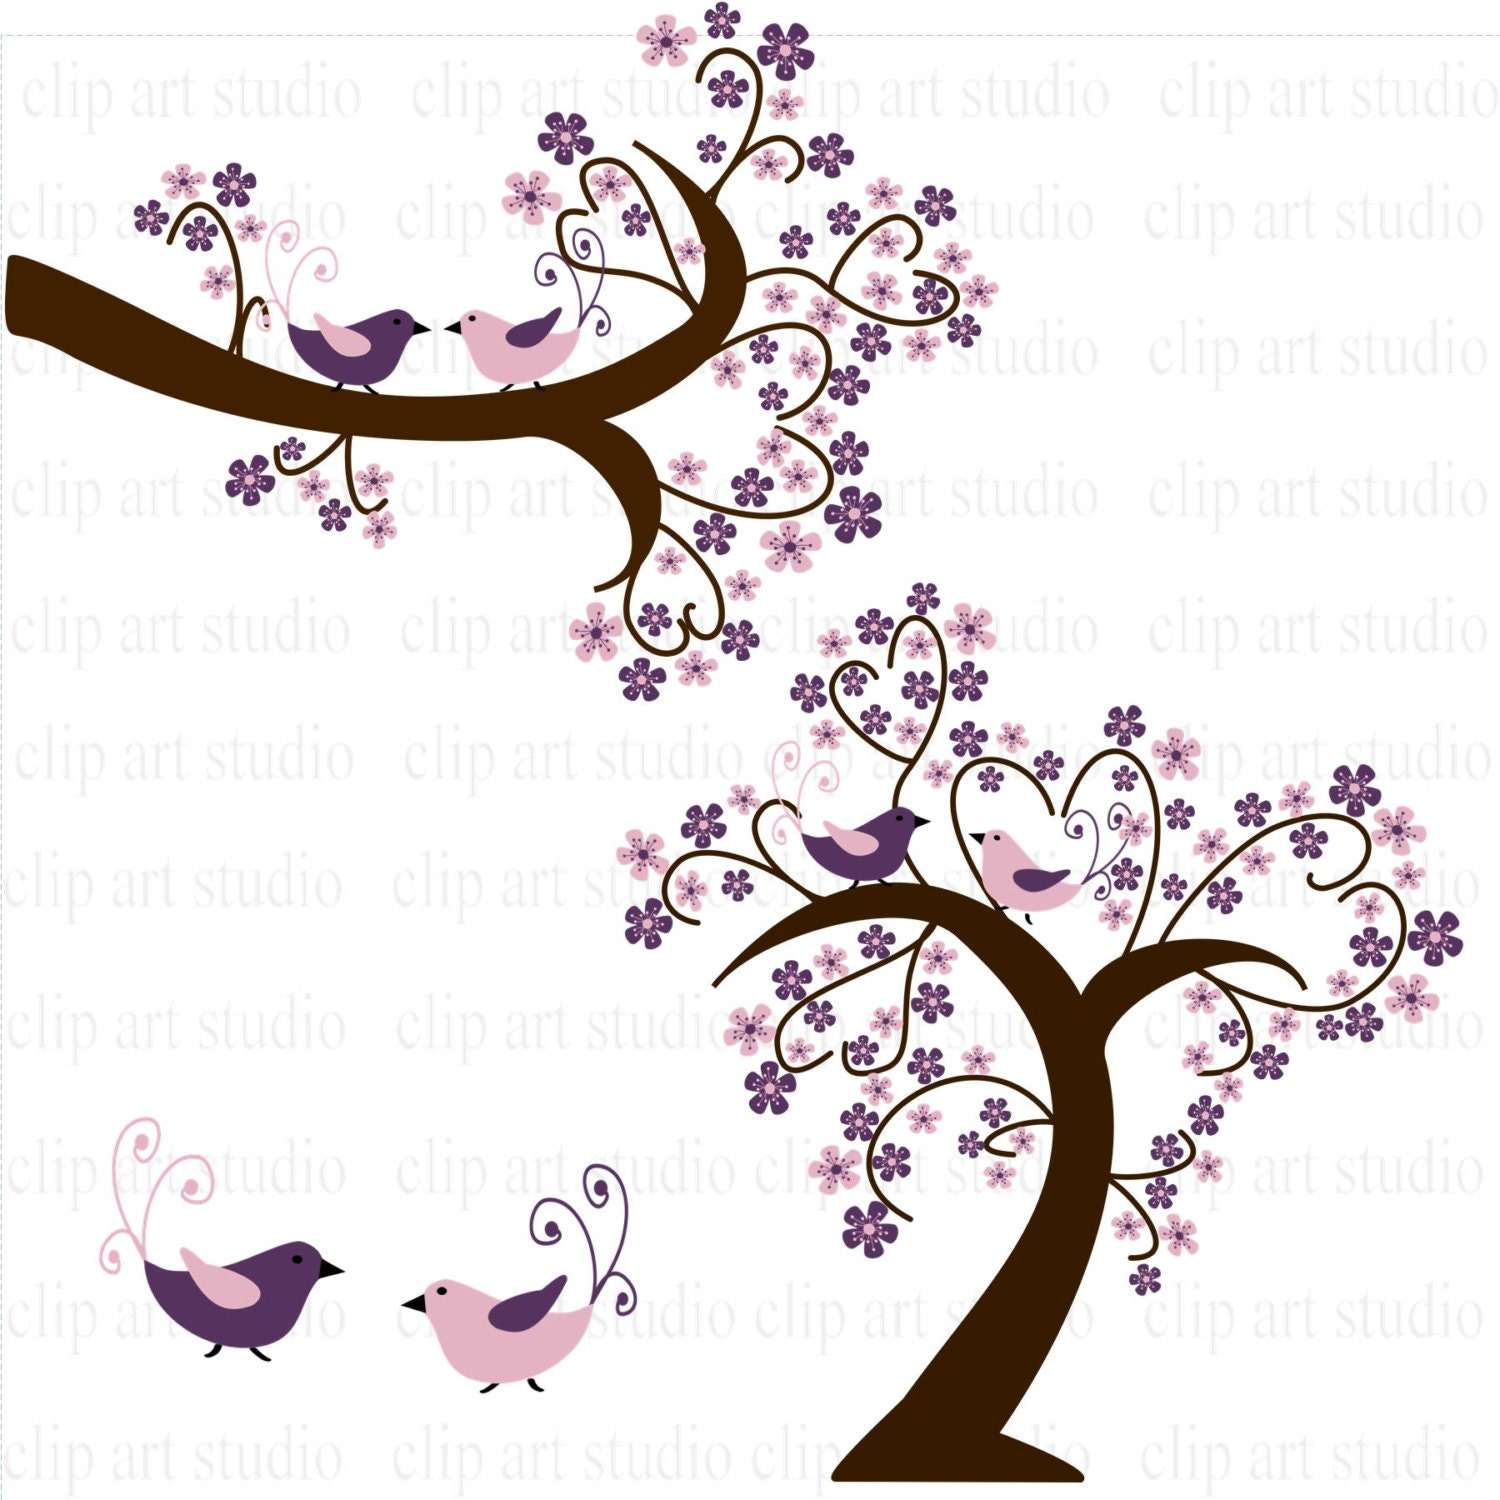 Wedding Tree and branch clipart with hearts flowers birds in